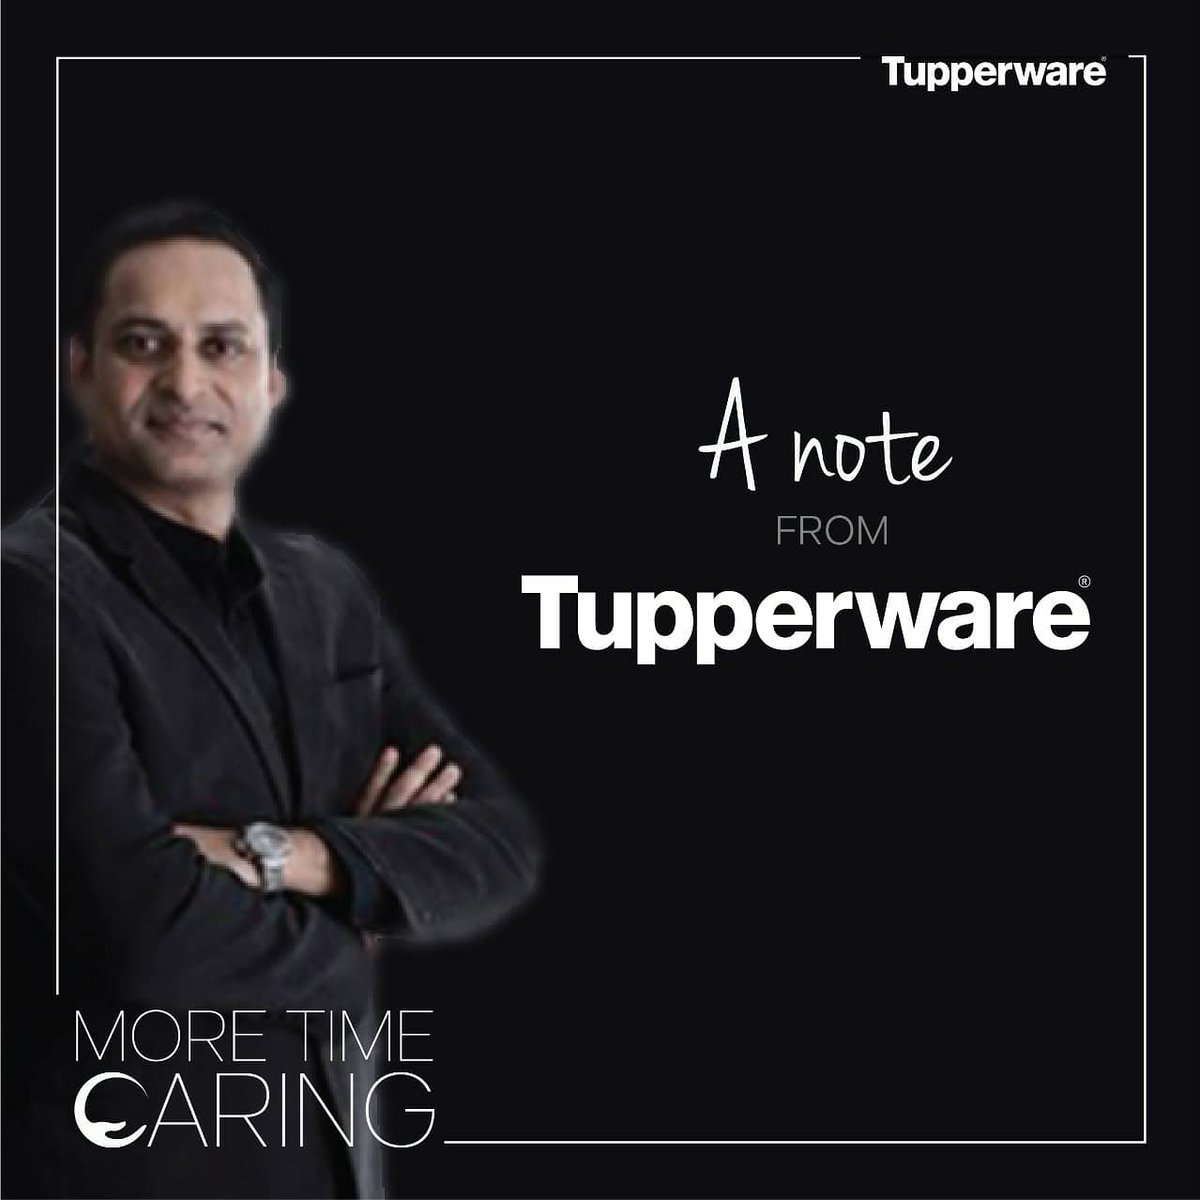 As the #lockdown continues, a message from our Managing Director, letting you know that Tupperware is with you and together we shall conquer this. #StayHome #StaySafe #MoreTimeCaring (1/2) https://t.co/js9YKoueI6